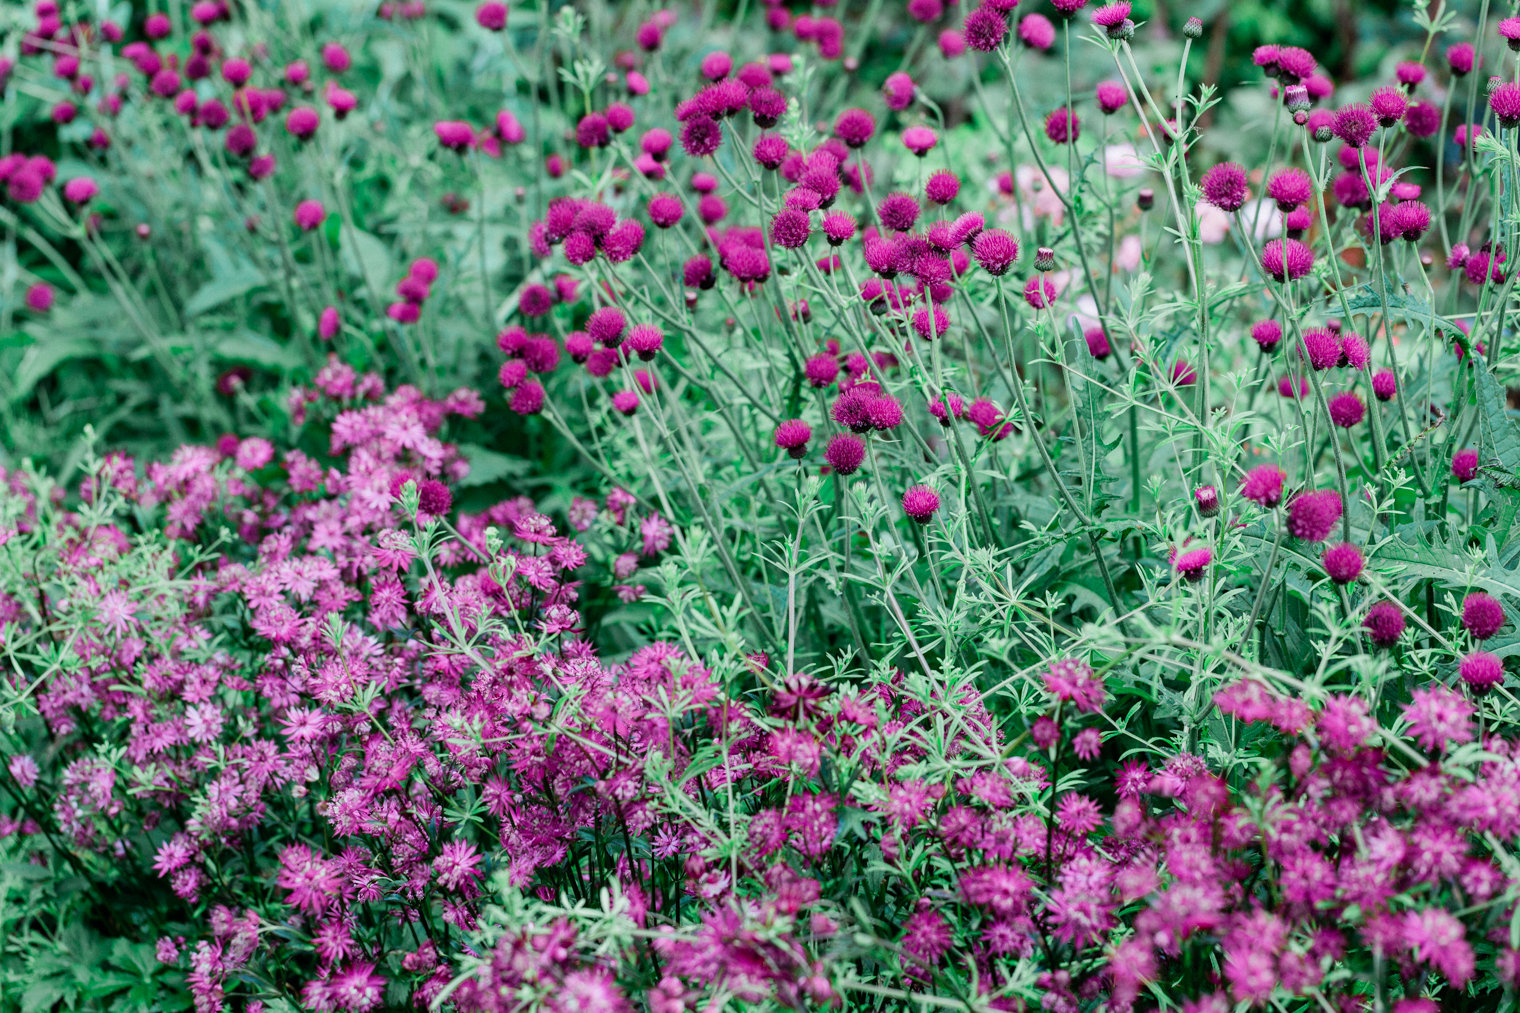 Pink Flowers at Thyme